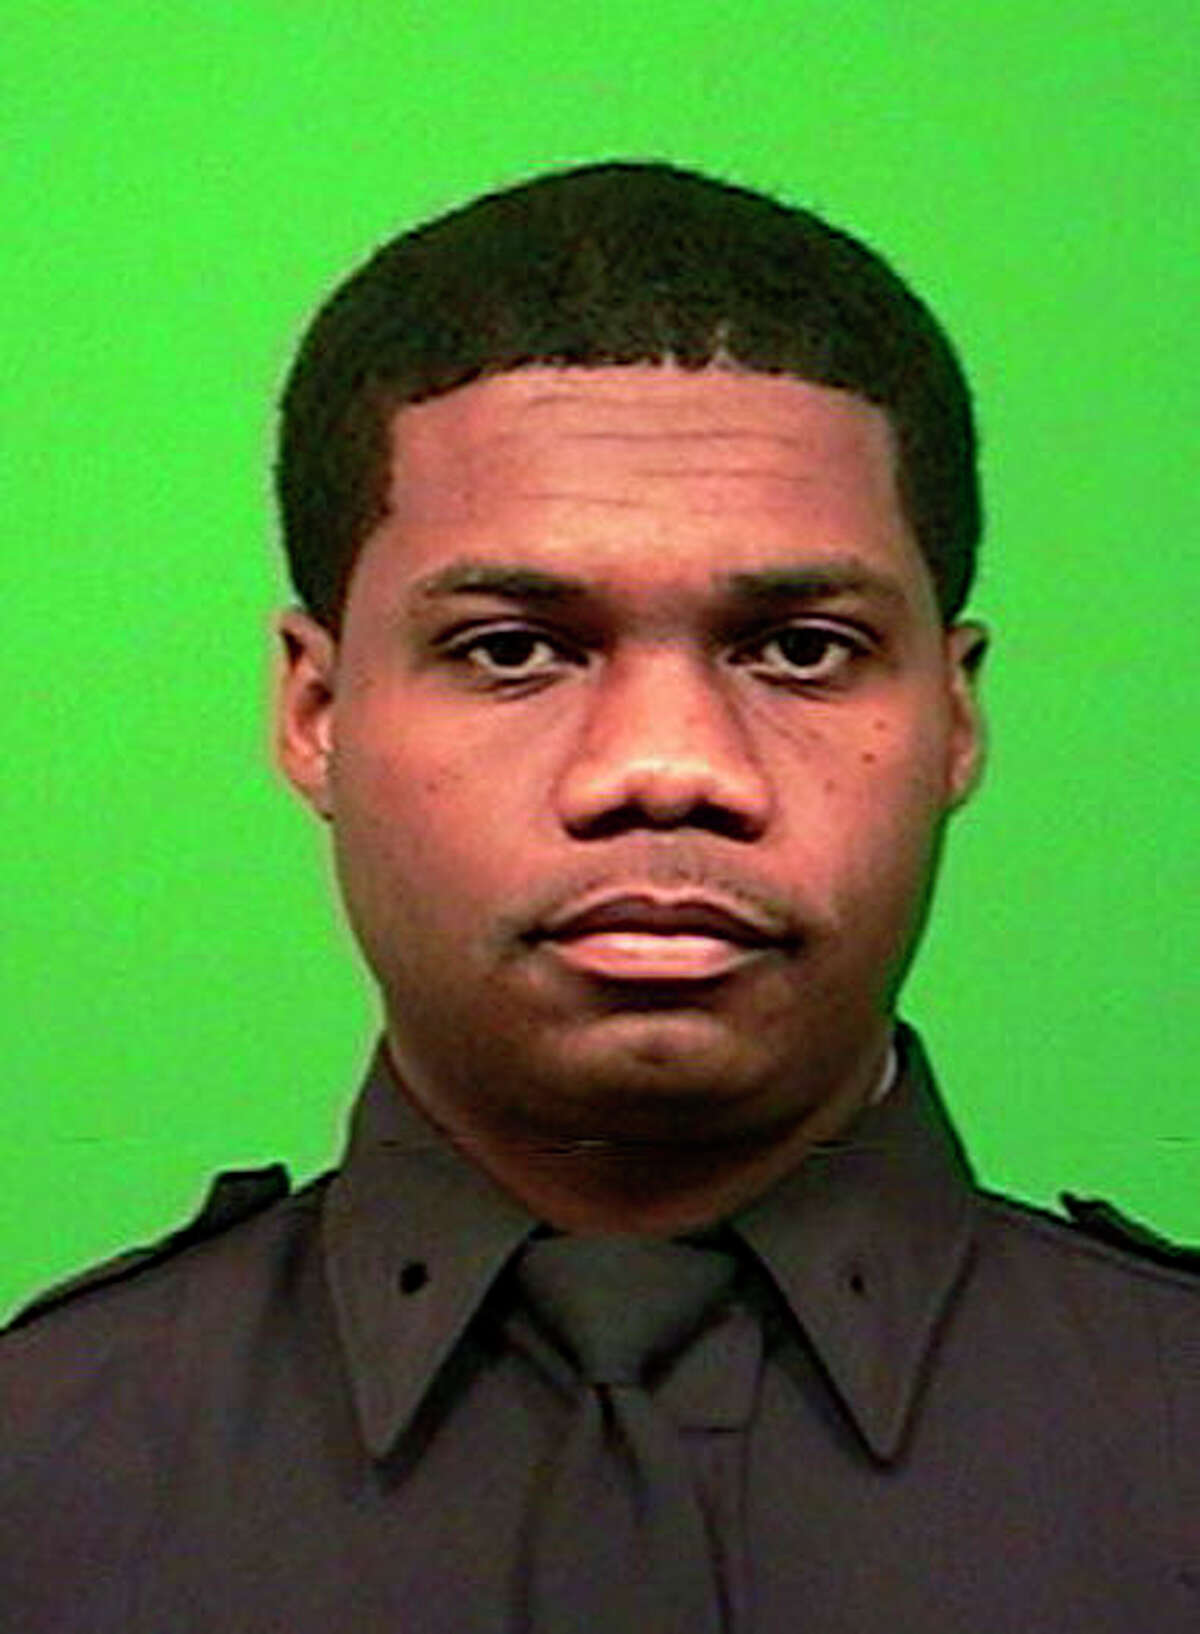 A photo, date not known, provided by the New York Police Department shows police Officer Randolph Holder, who police said died after being shot in the head in a gun battle while pursuing a suspect on Oct. 20, 2015 in New York following a report of shots fired.